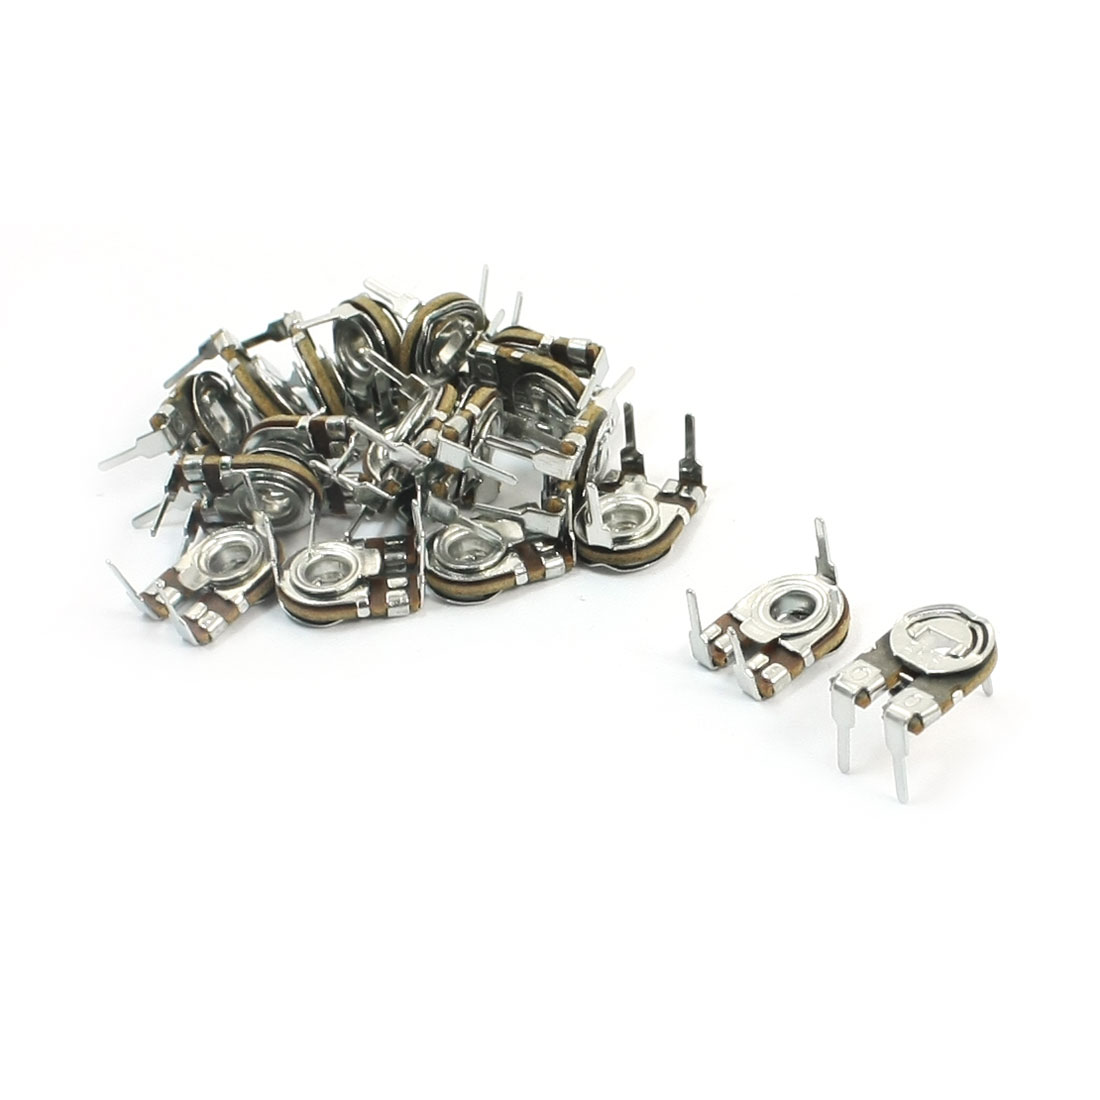 20Pcs Horizontal 3Pole Terminals 6.8K Ohm Variable Resistor Trimmer Potentiometer